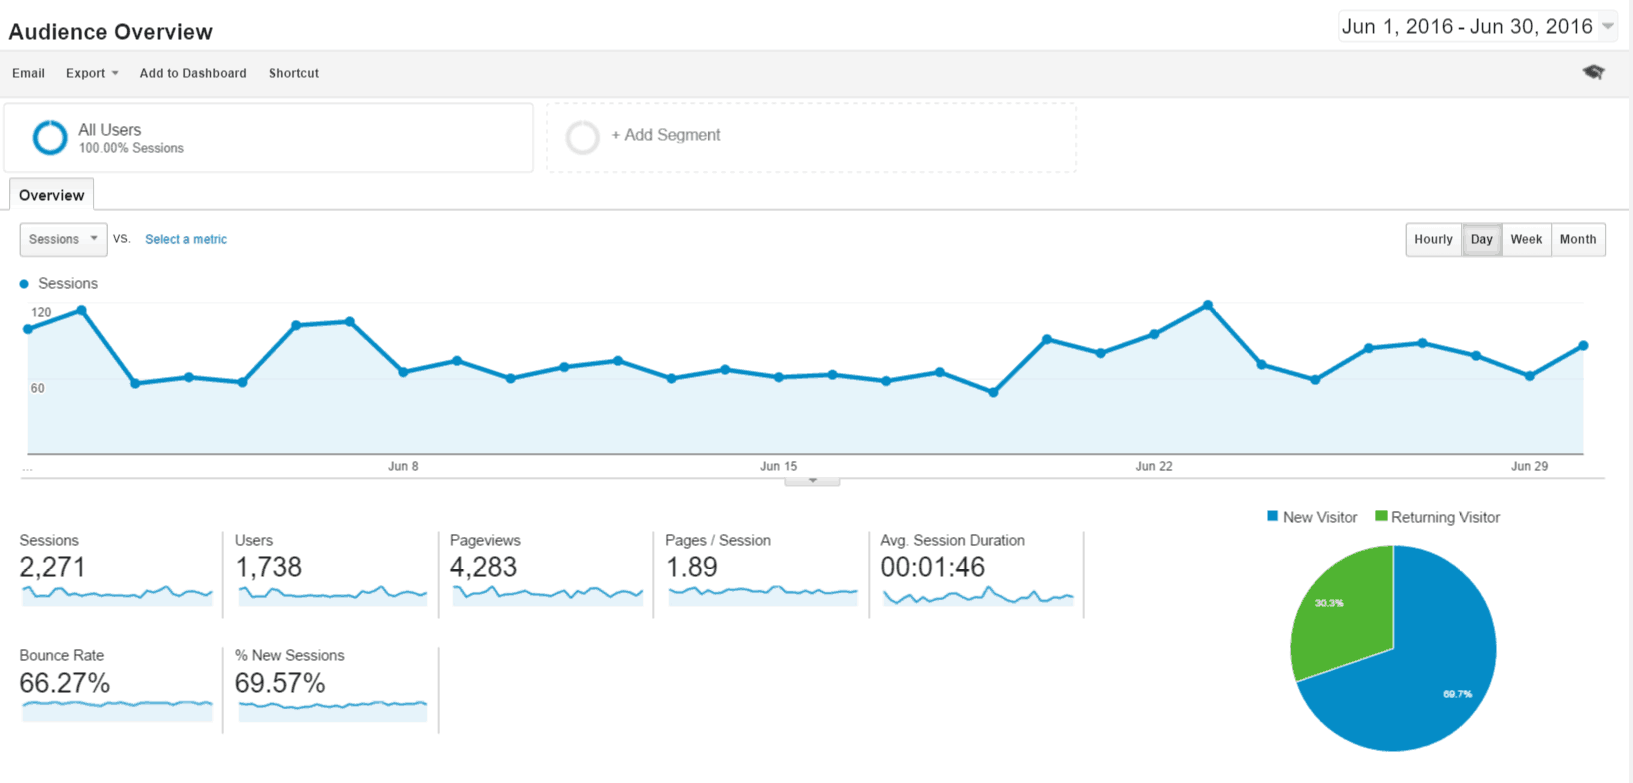 Google Analytics June Audience Overview